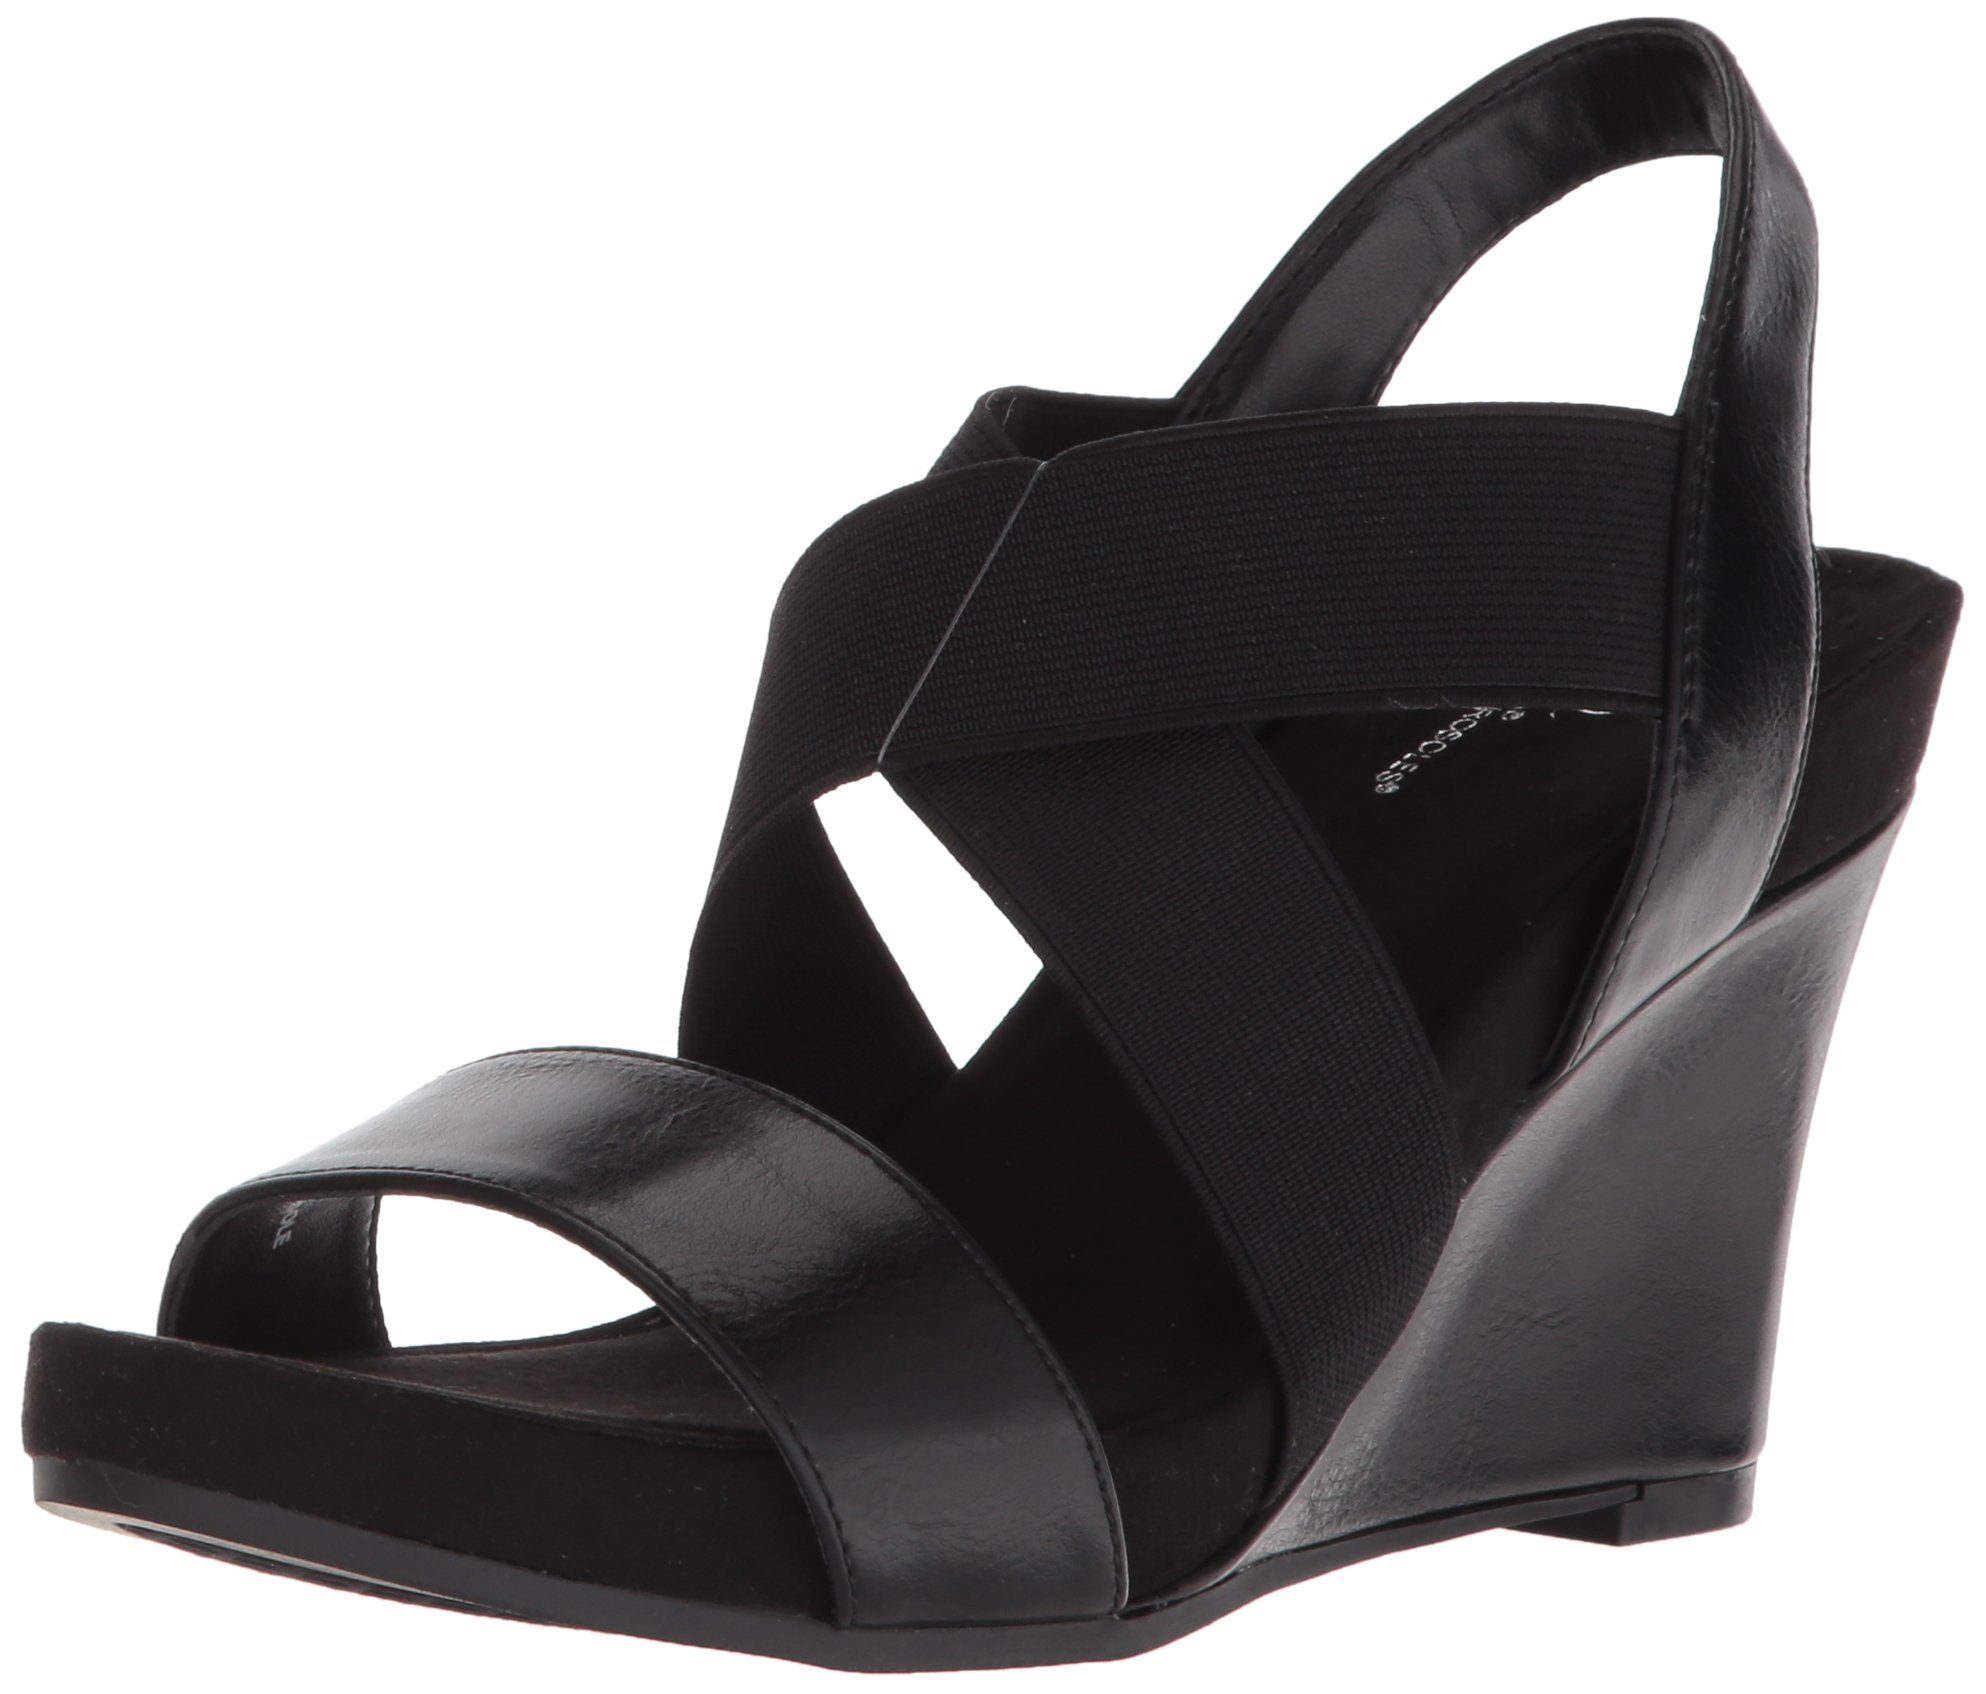 Aerosoles A2 Women's Lotus Plush Wedge Sandal, Black, 7.5 M US